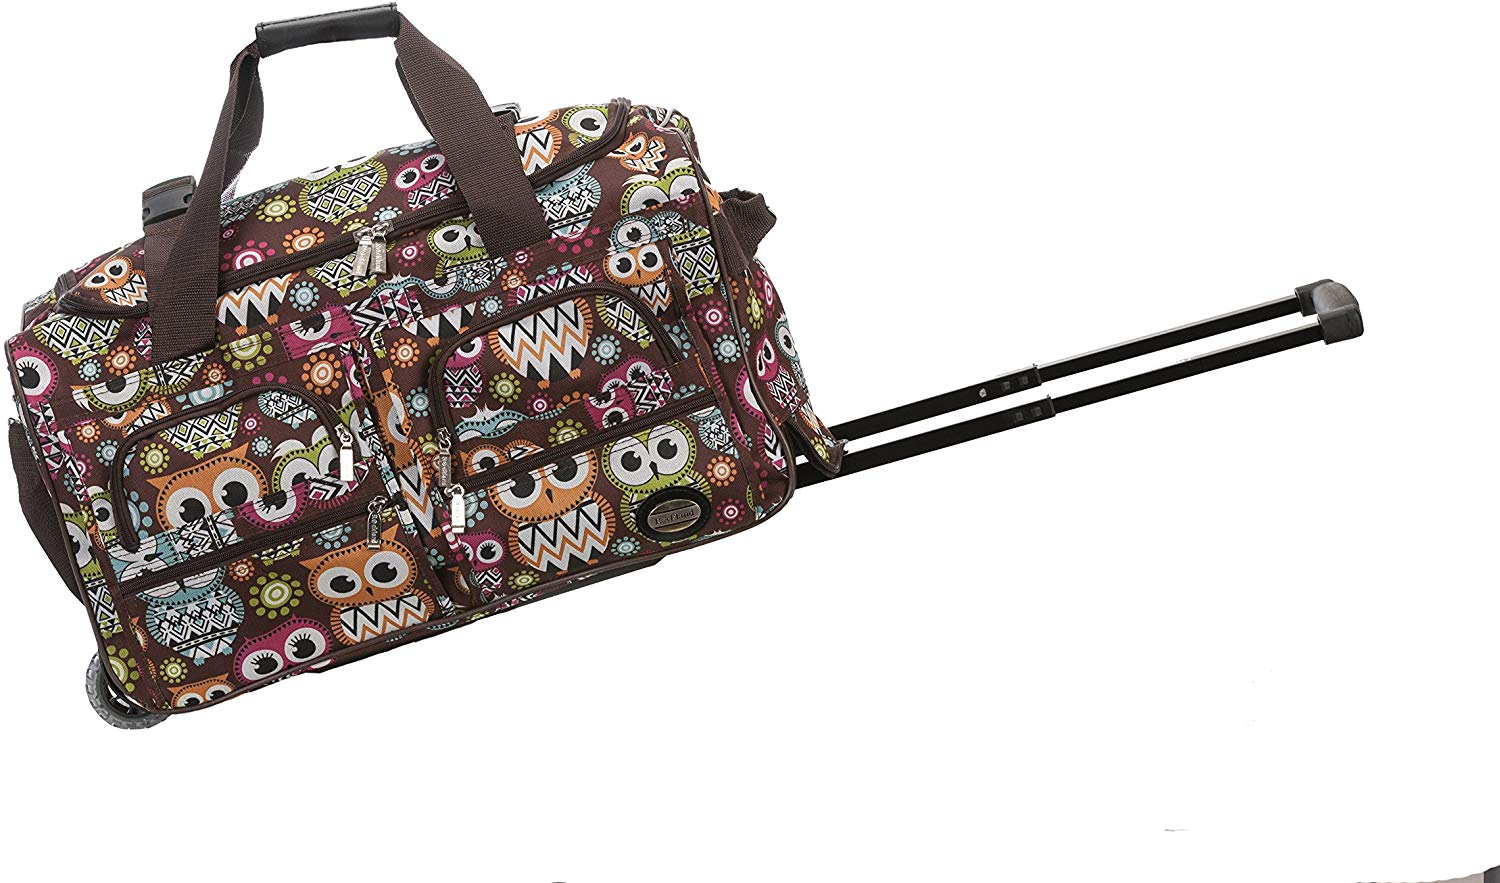 Rockland Rolling Duffle Baggage